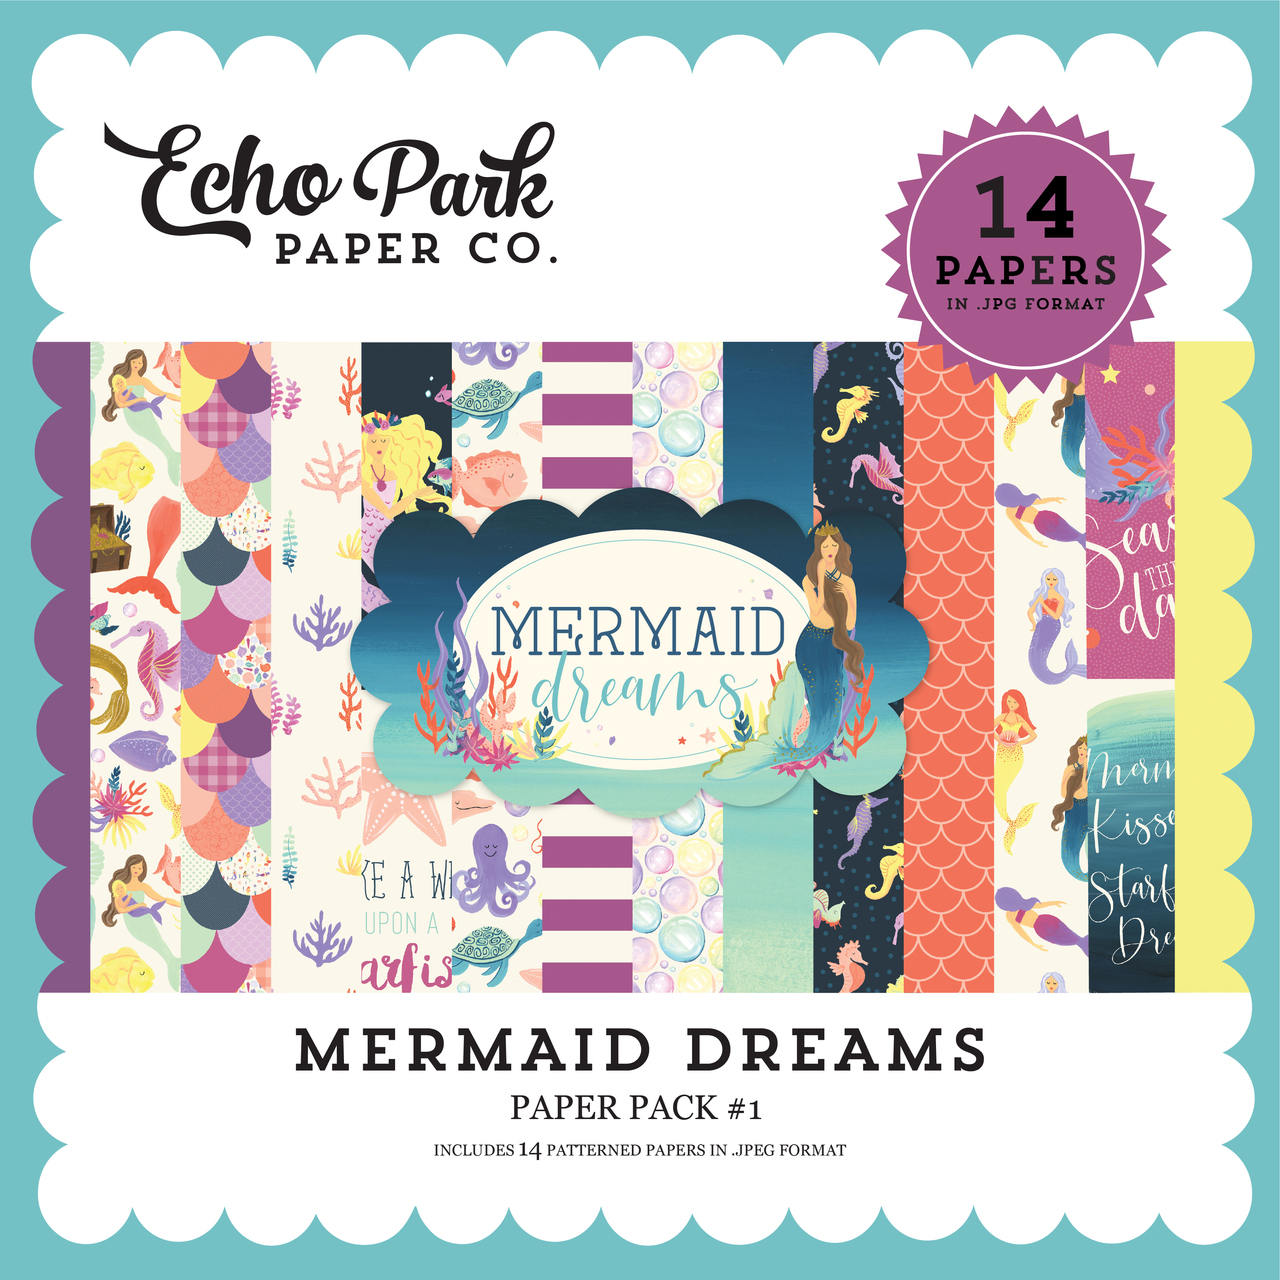 Mermaid Dreams Paper Pack #1